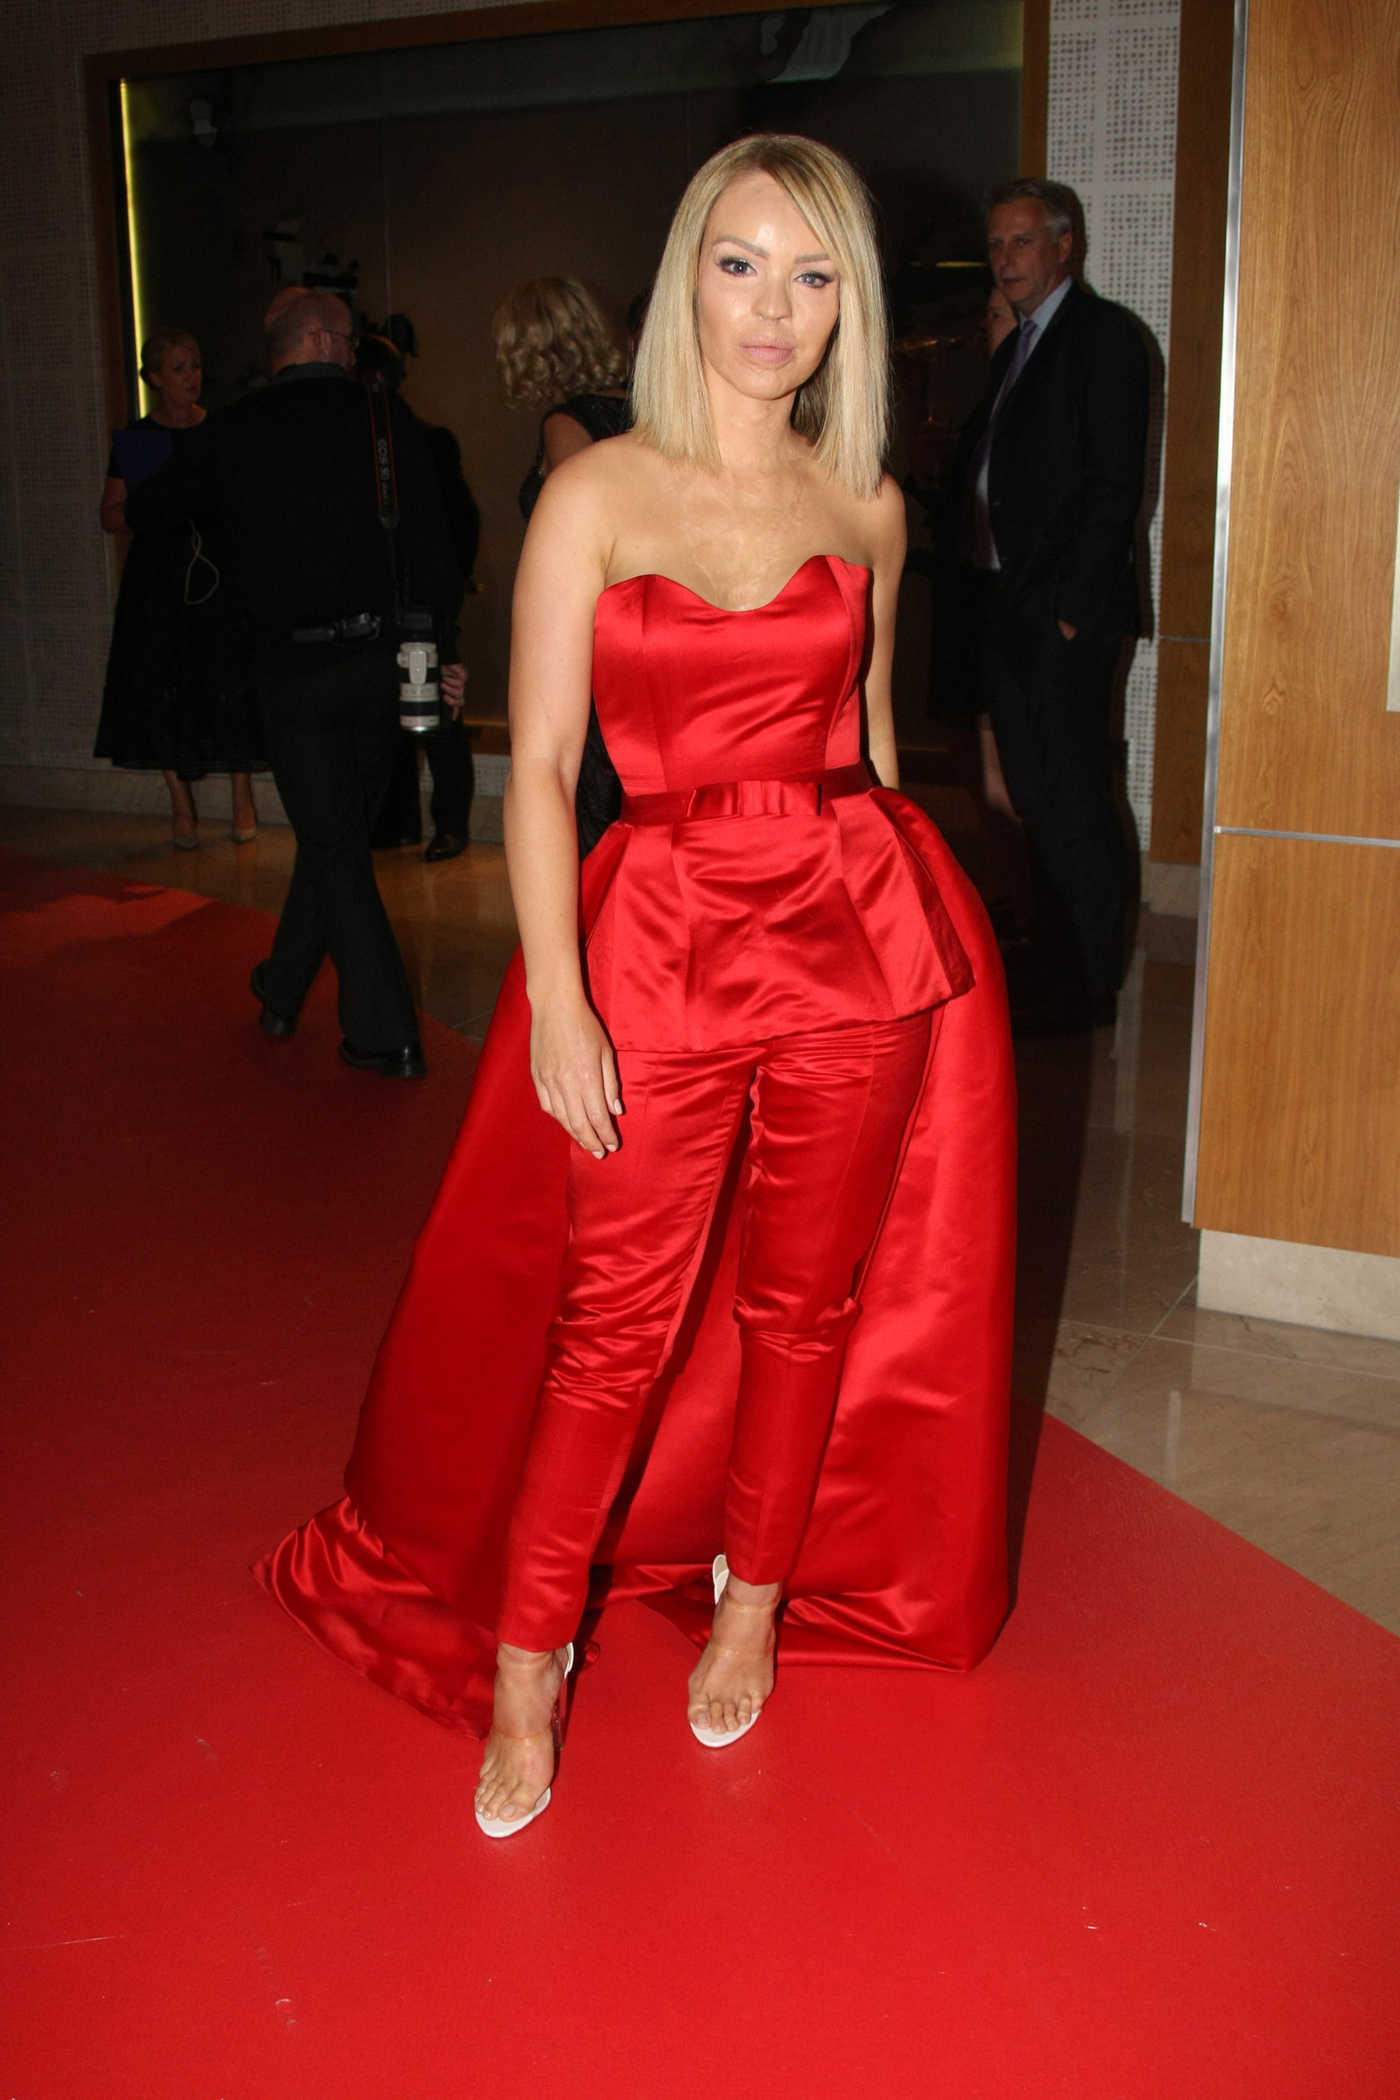 Katie Piper at the 2016 Pride of Ireland Awards 09/12/2016